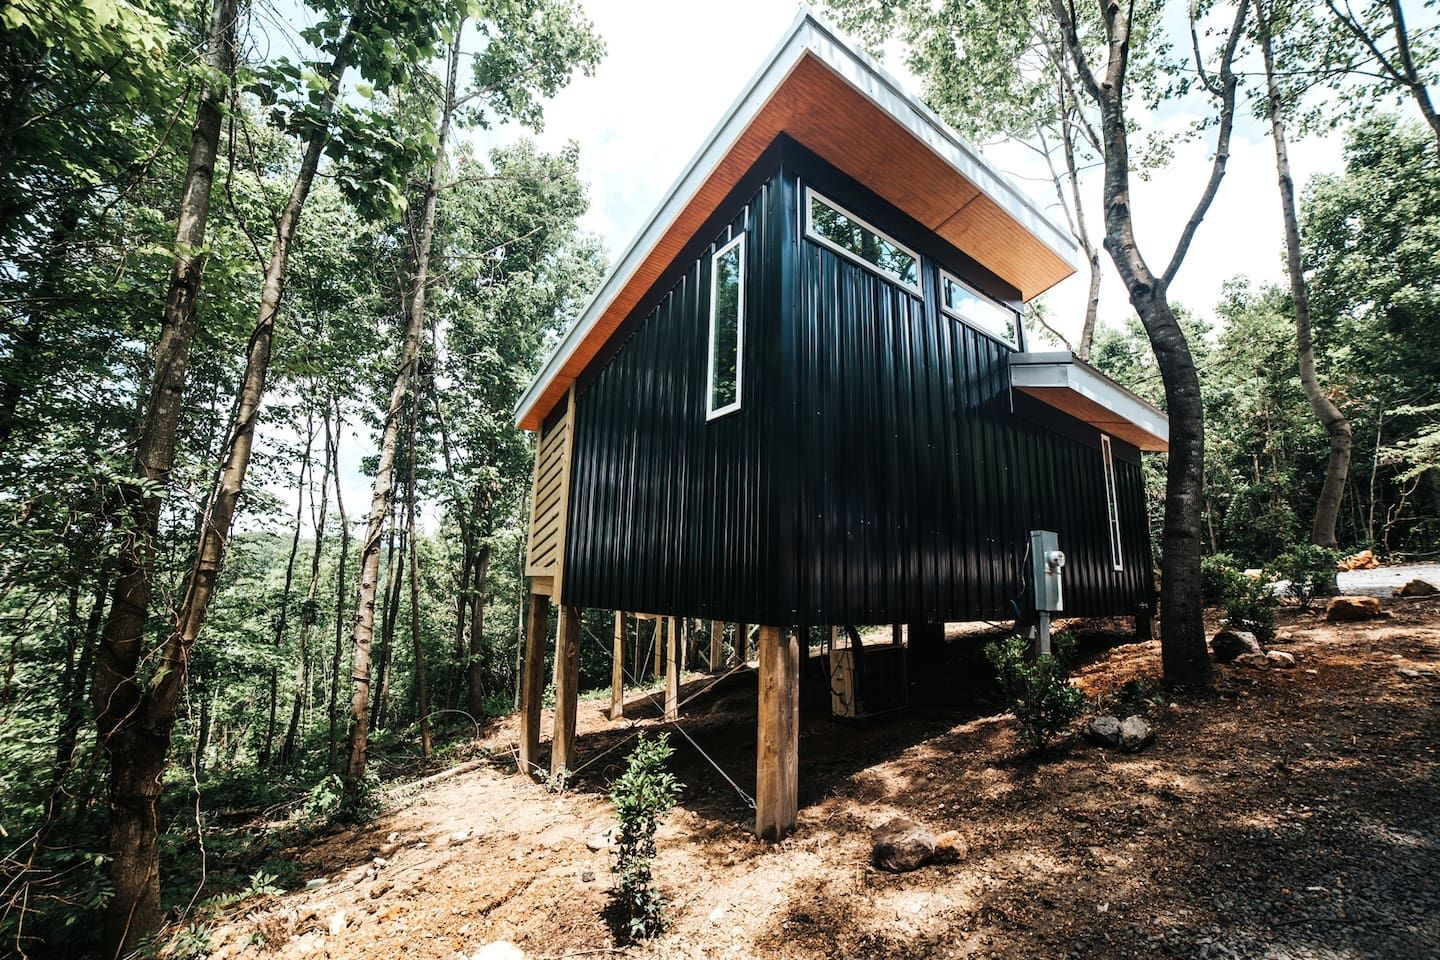 27 Tiny Houses In Georgia You Can Rent On Airbnb In 2021 Tiny House Exterior Tree House Georgia Homes